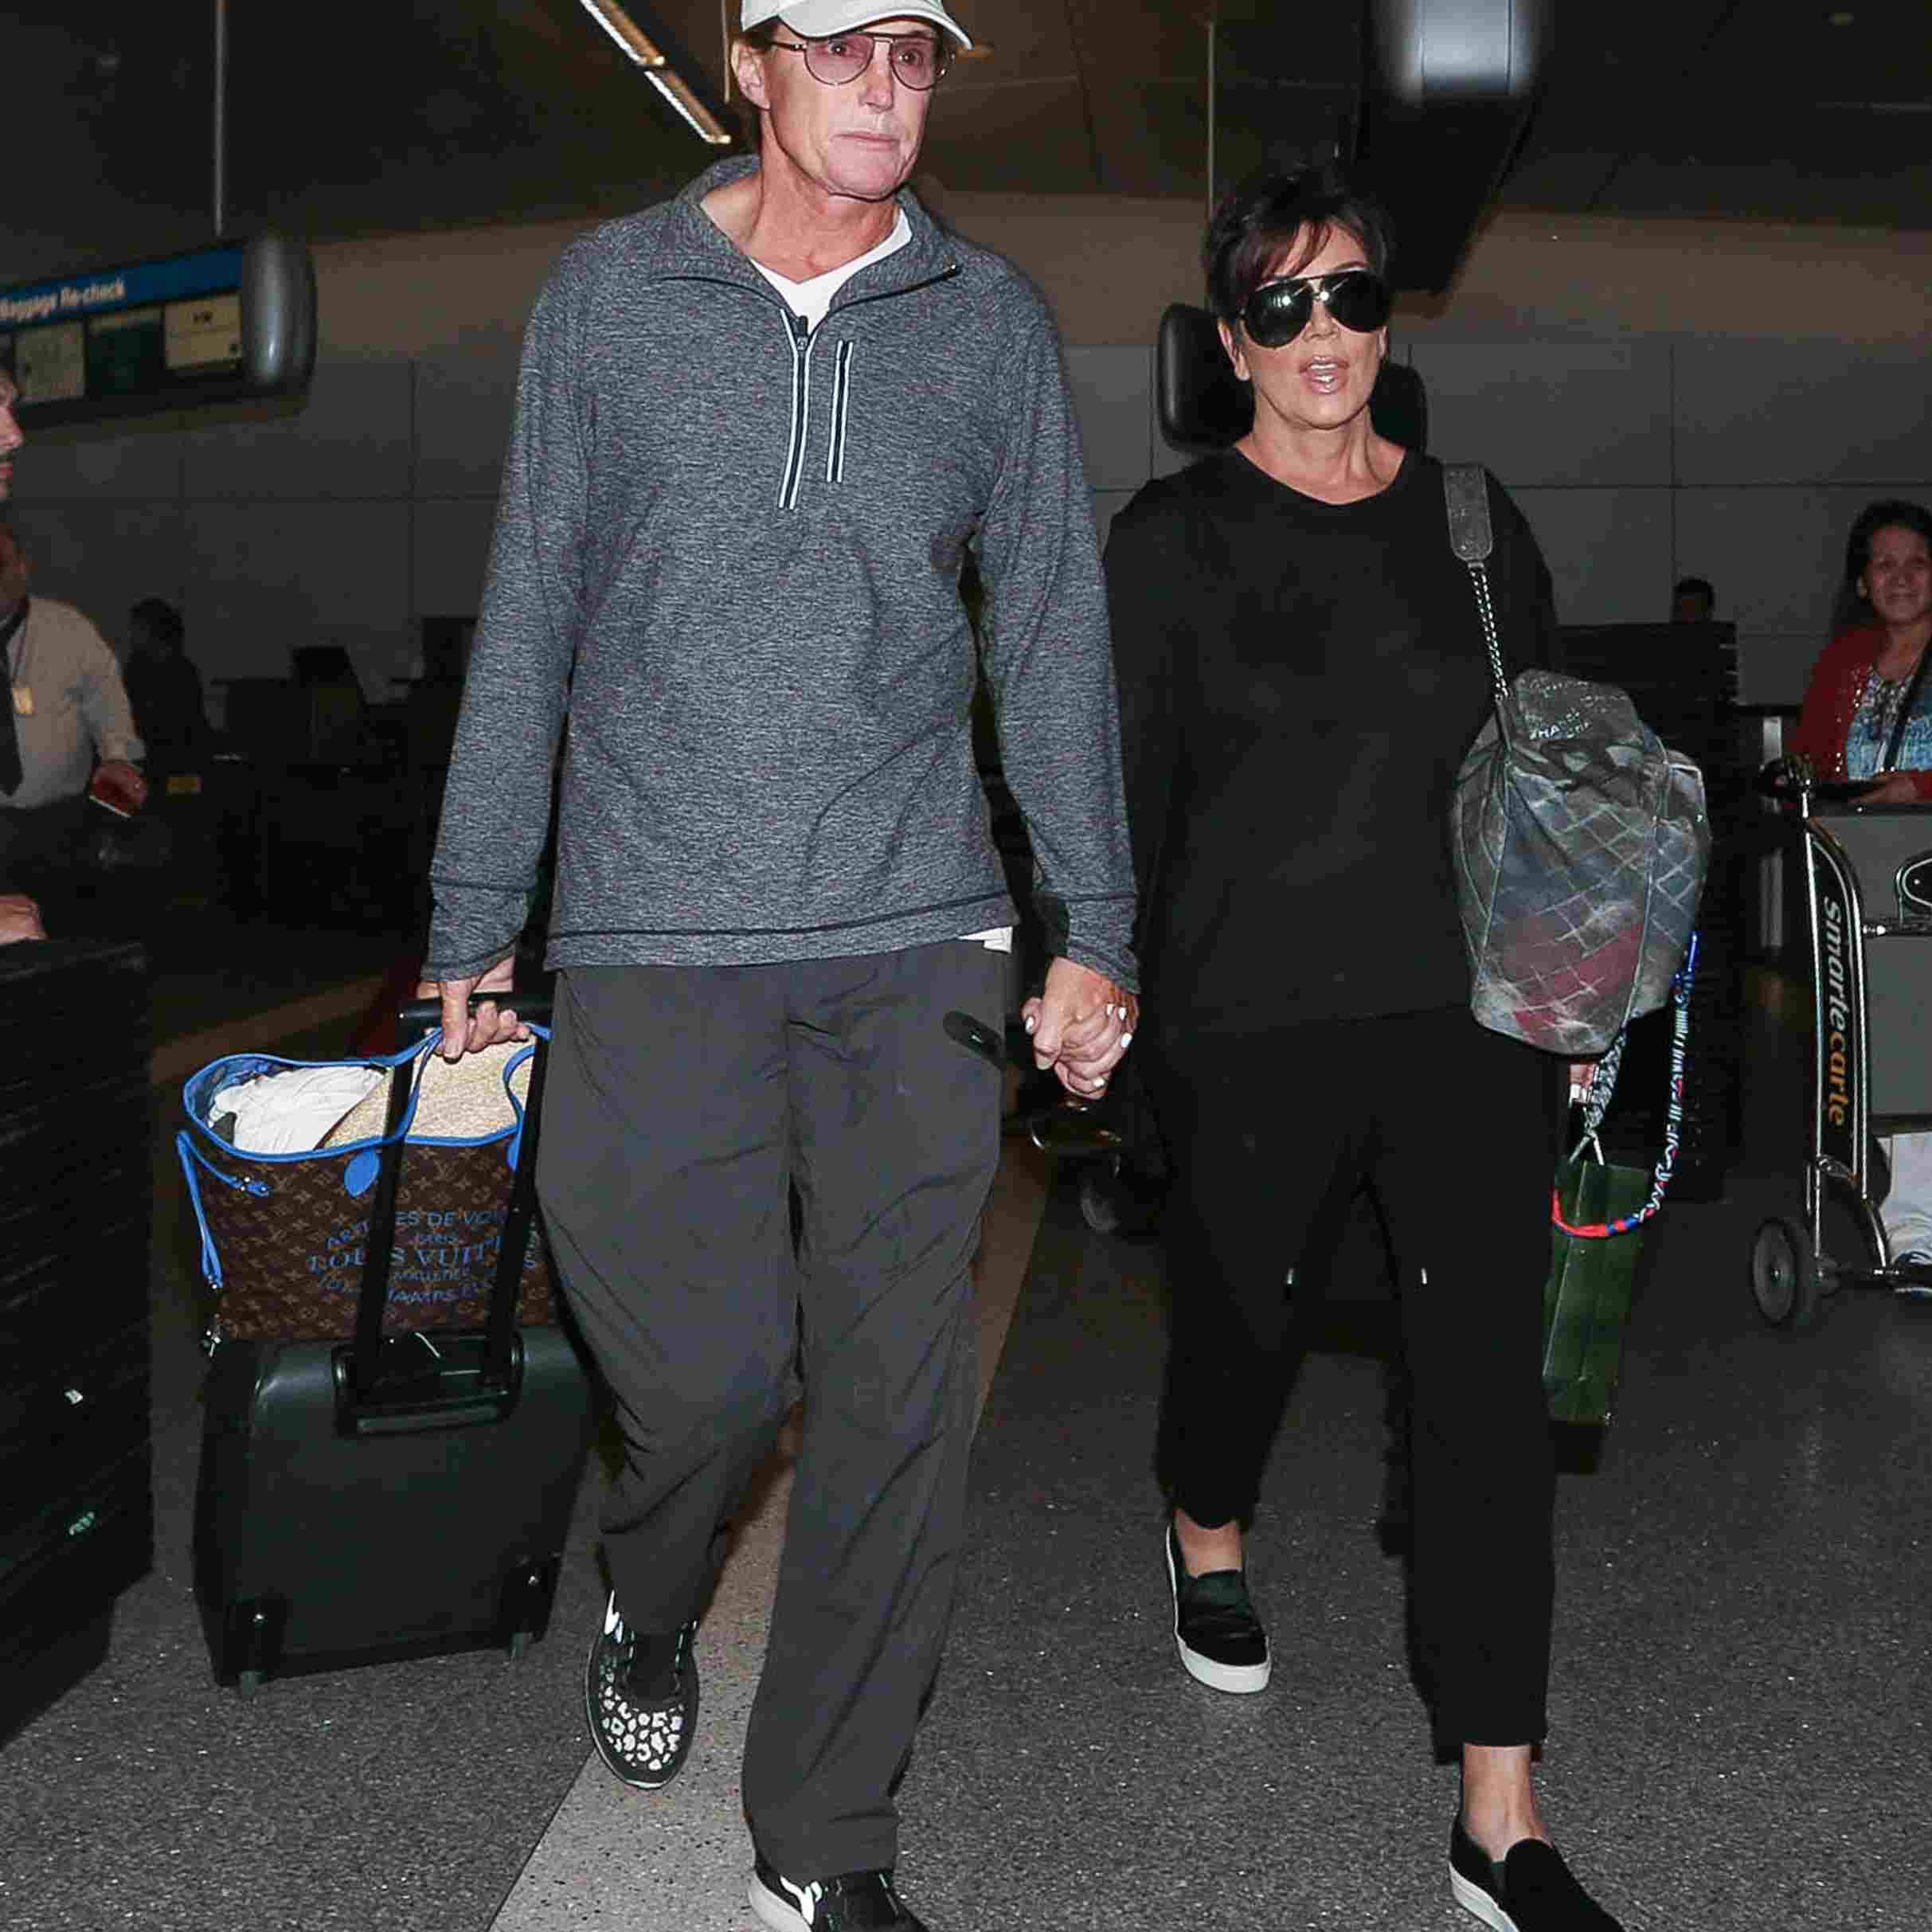 Bruce and Kris Jenner at LAX